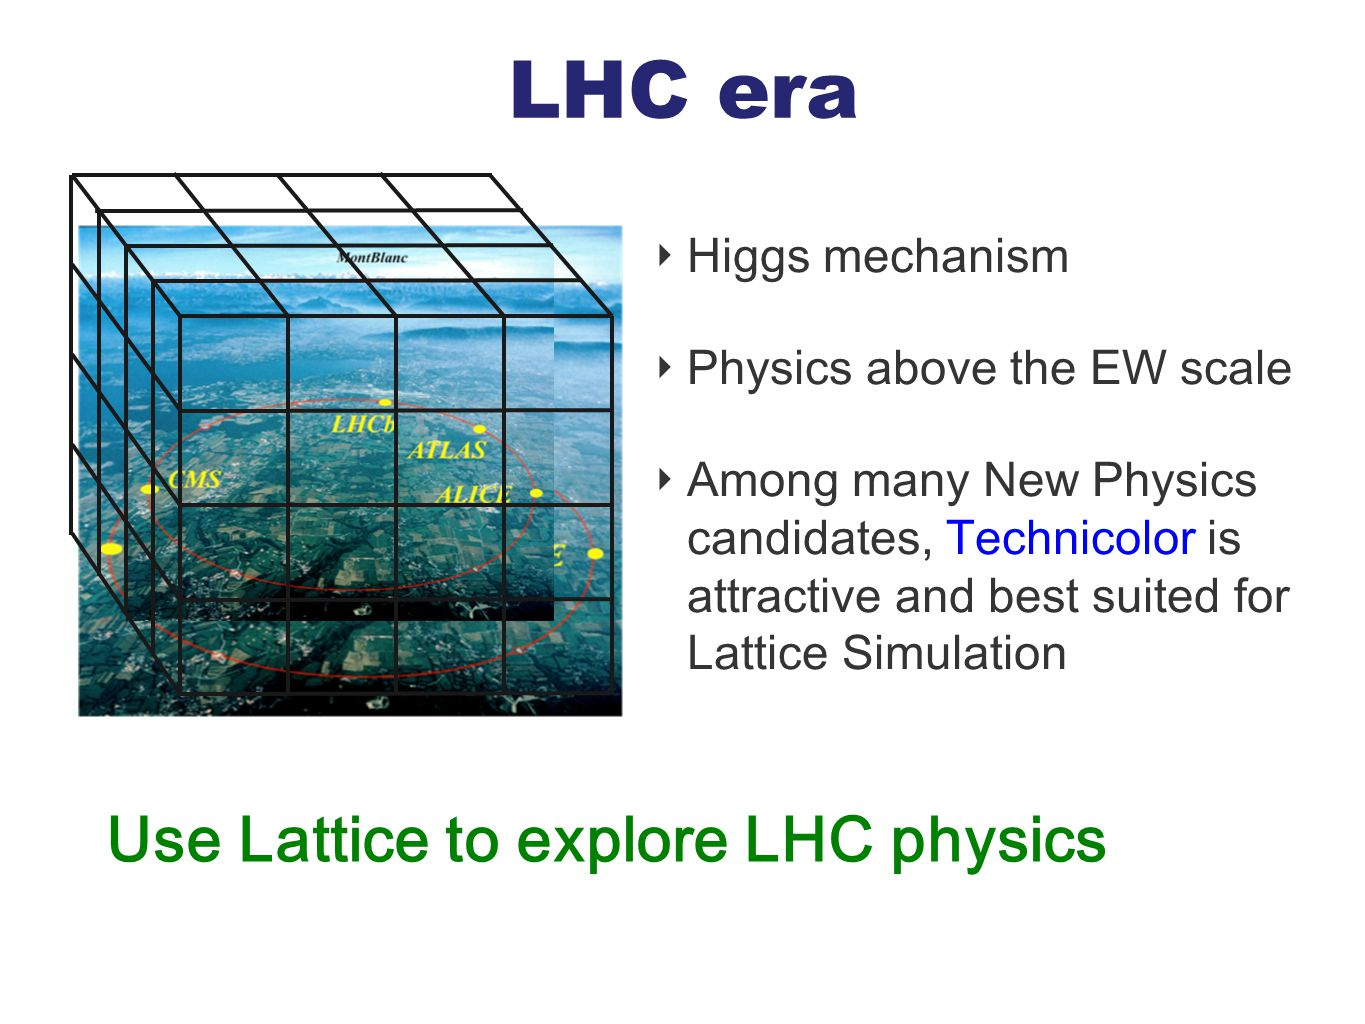 LHC era Use Lattice to explore LHC physics ‣ Higgs mechanism ‣ Physics above the EW scale ‣ Among many New Physics candidates, Technicolor is attracti